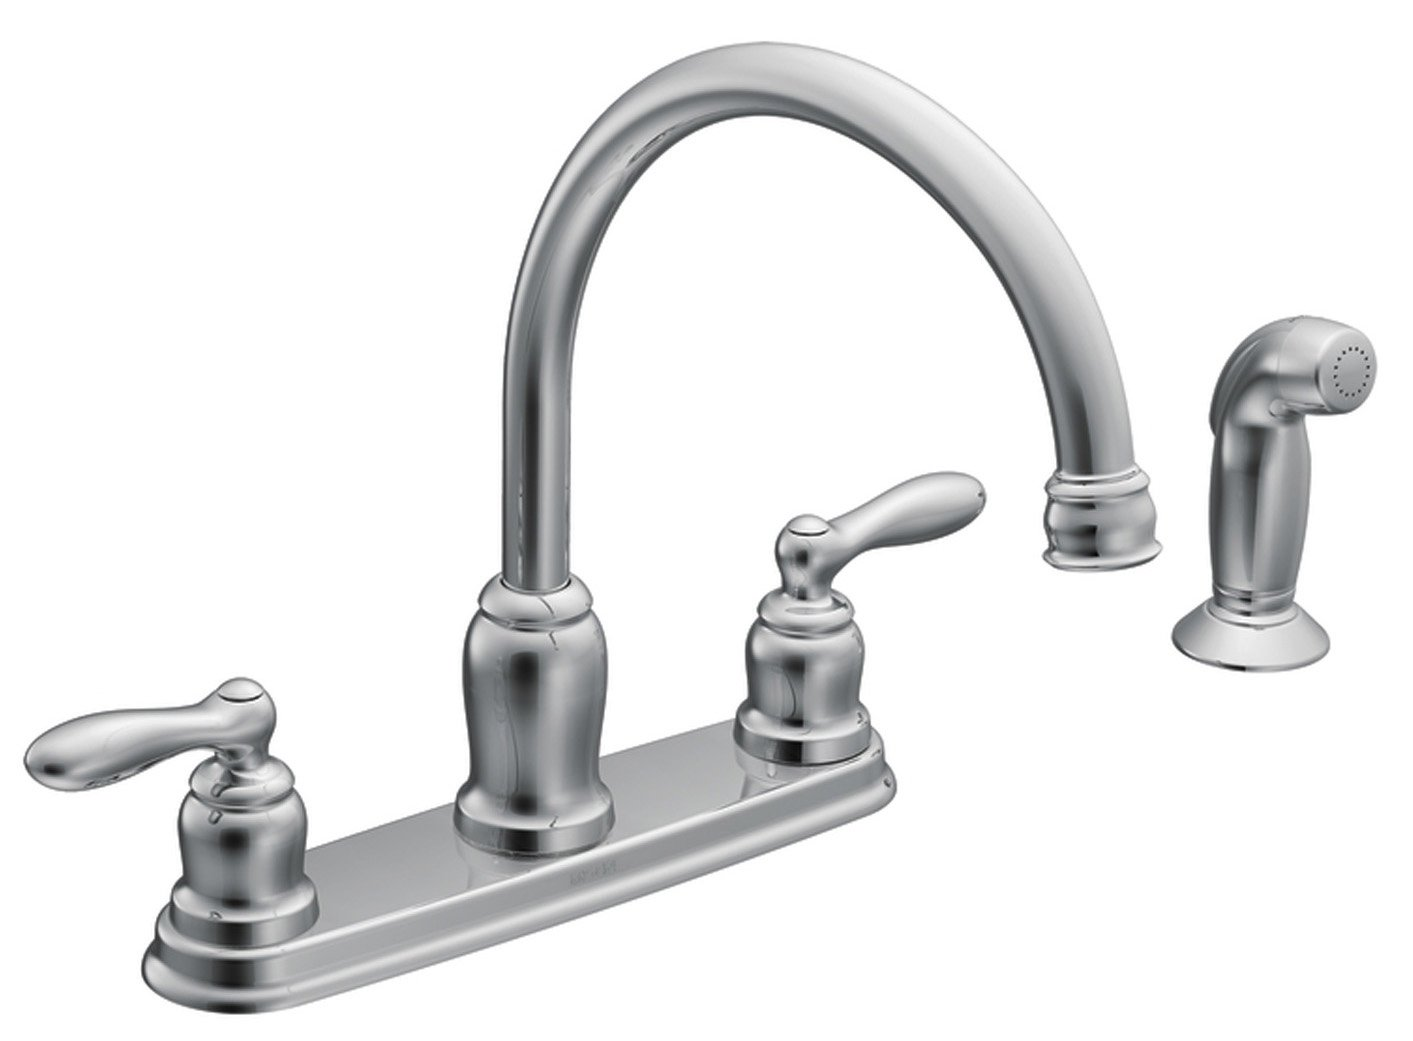 Etonnant Moen CA87888 High Arc Kitchen Faucet From The Caldwell Collection, Chrome    Touch On Kitchen Sink Faucets   Amazon.com